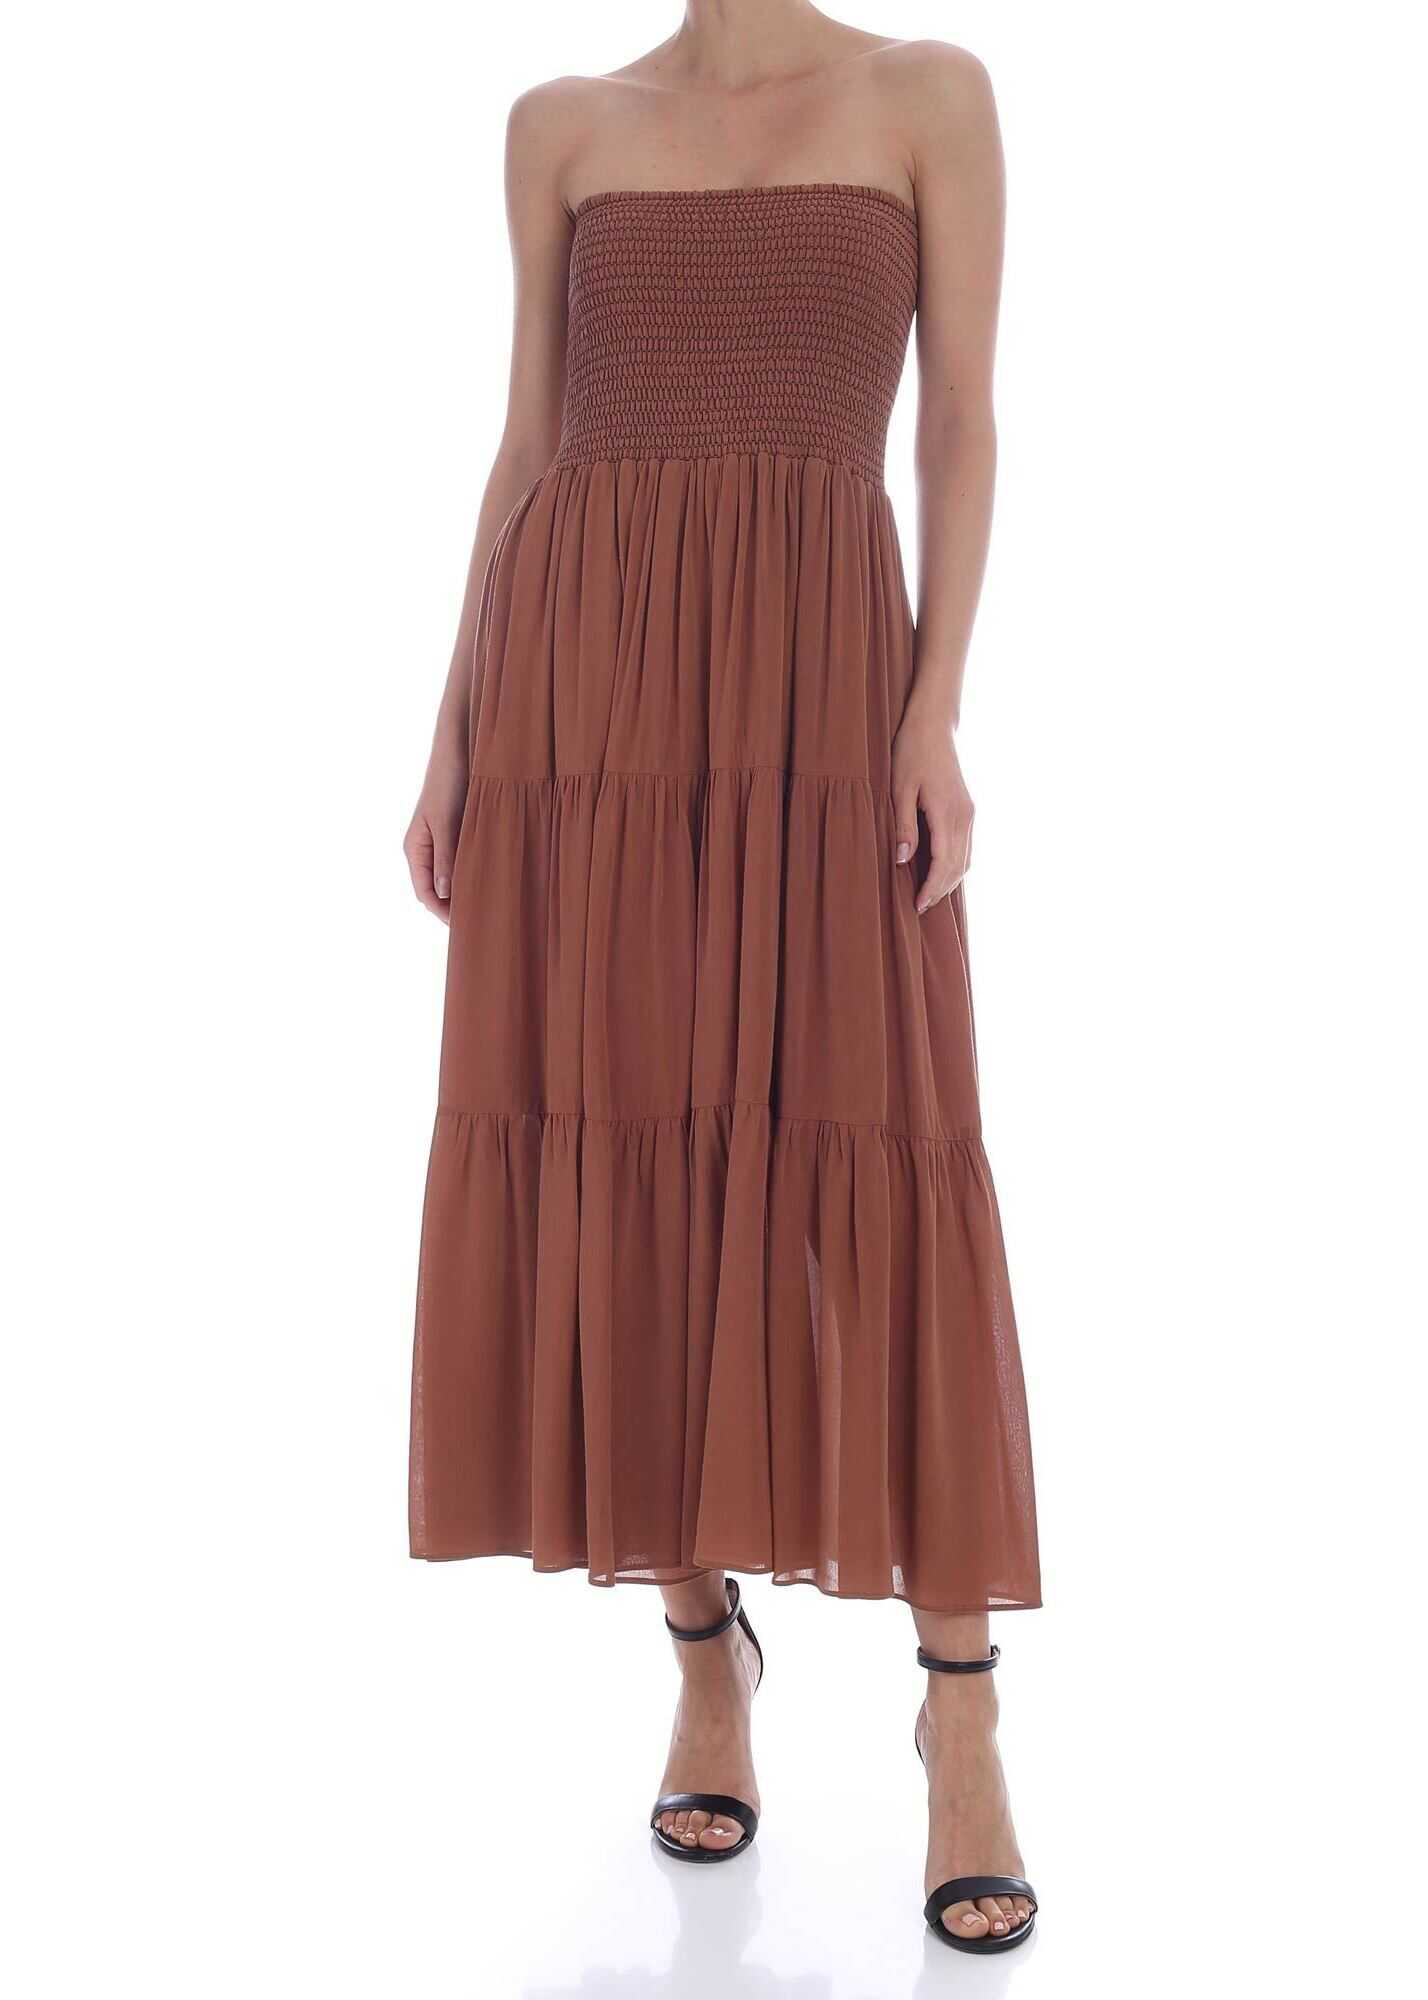 Pinko Lolly Skirt Dress In Brown Brown